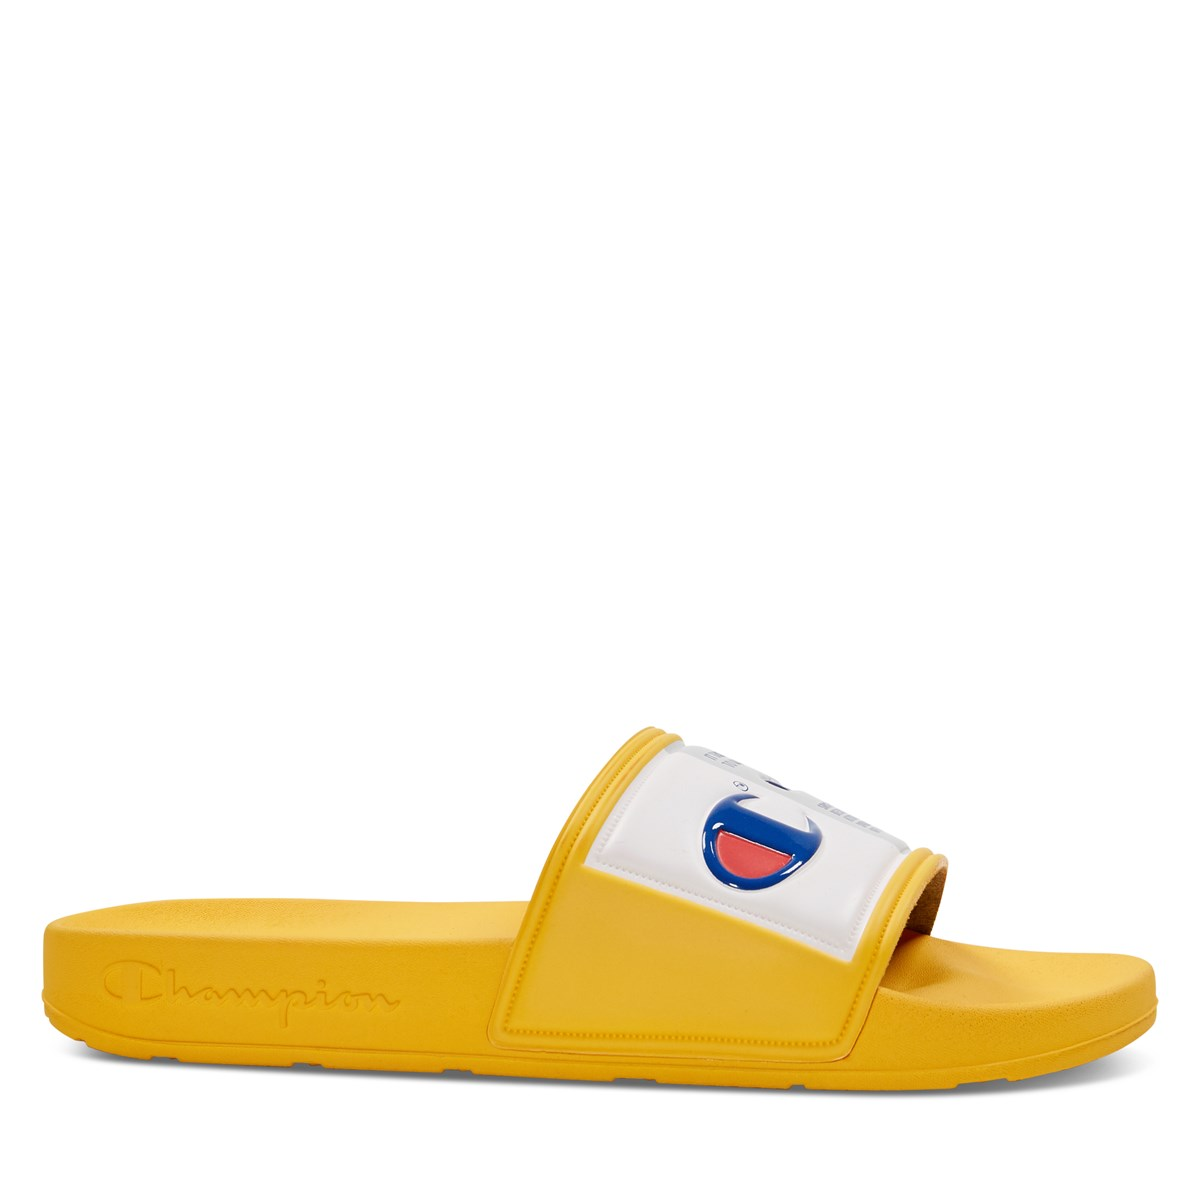 Men's IPO Jock Slides in Gold